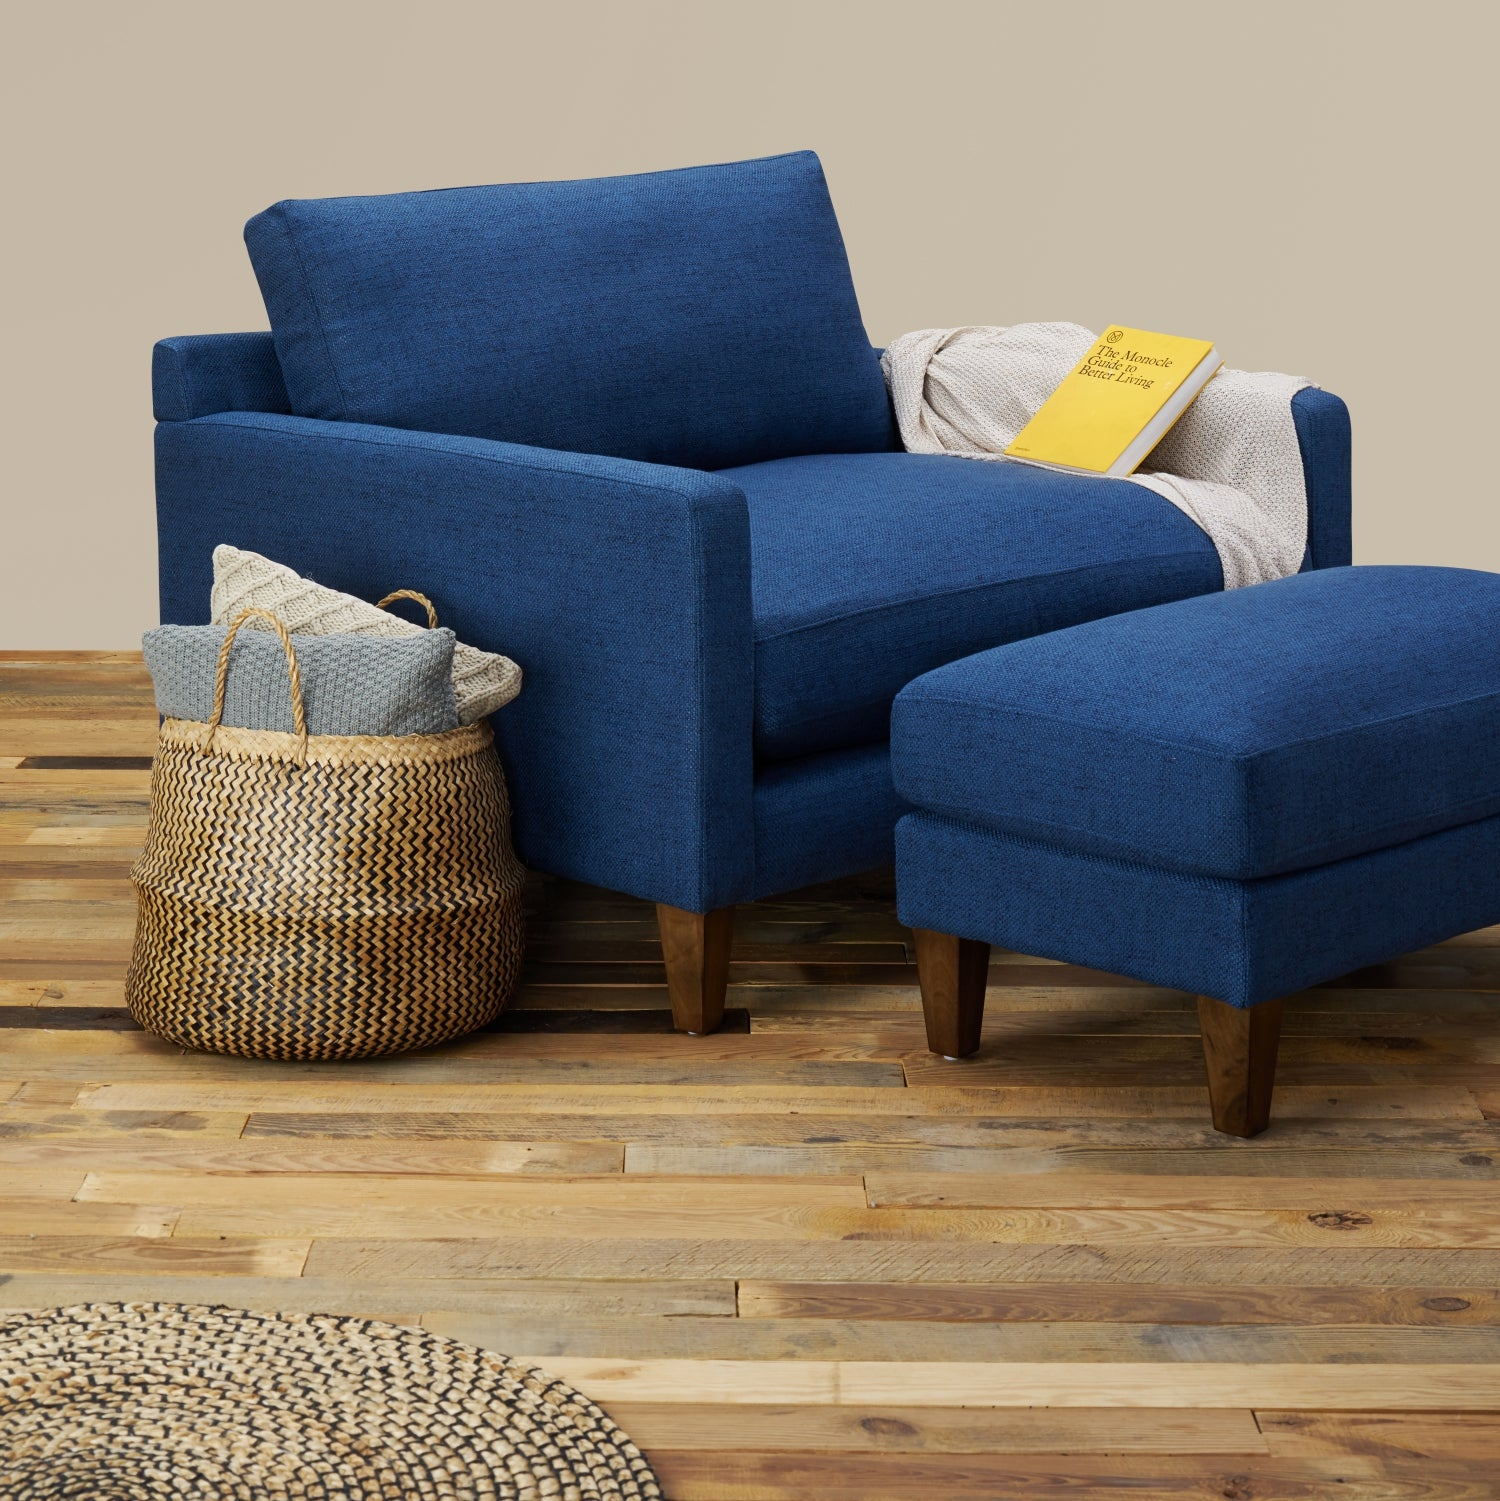 Groovy Romo Oversized Lounge Chair With Ottoman Gmtry Best Dining Table And Chair Ideas Images Gmtryco